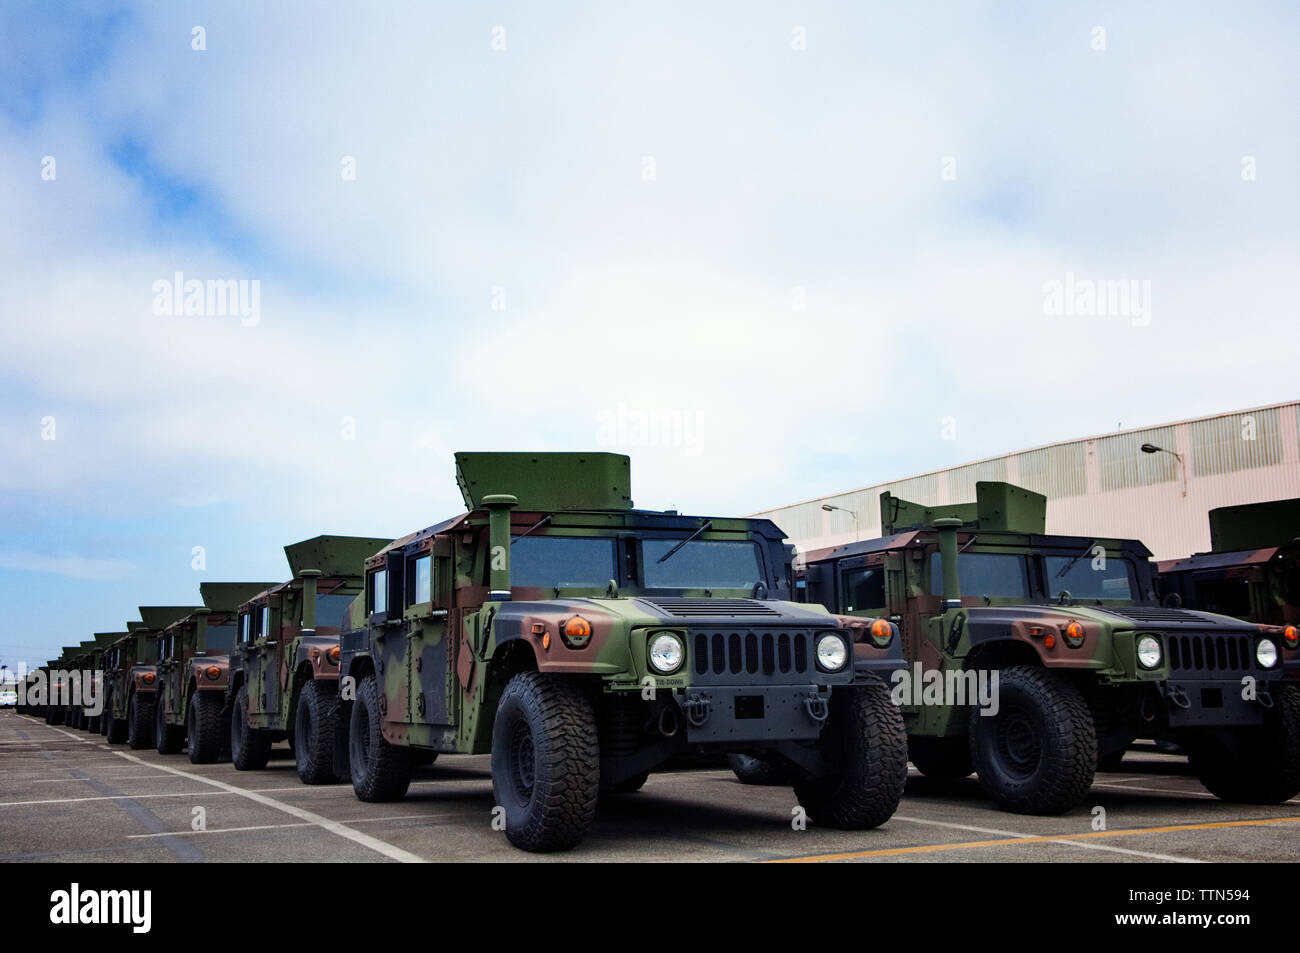 Military Vehicles Stock Photos & Military Vehicles Stock Images - Alamy